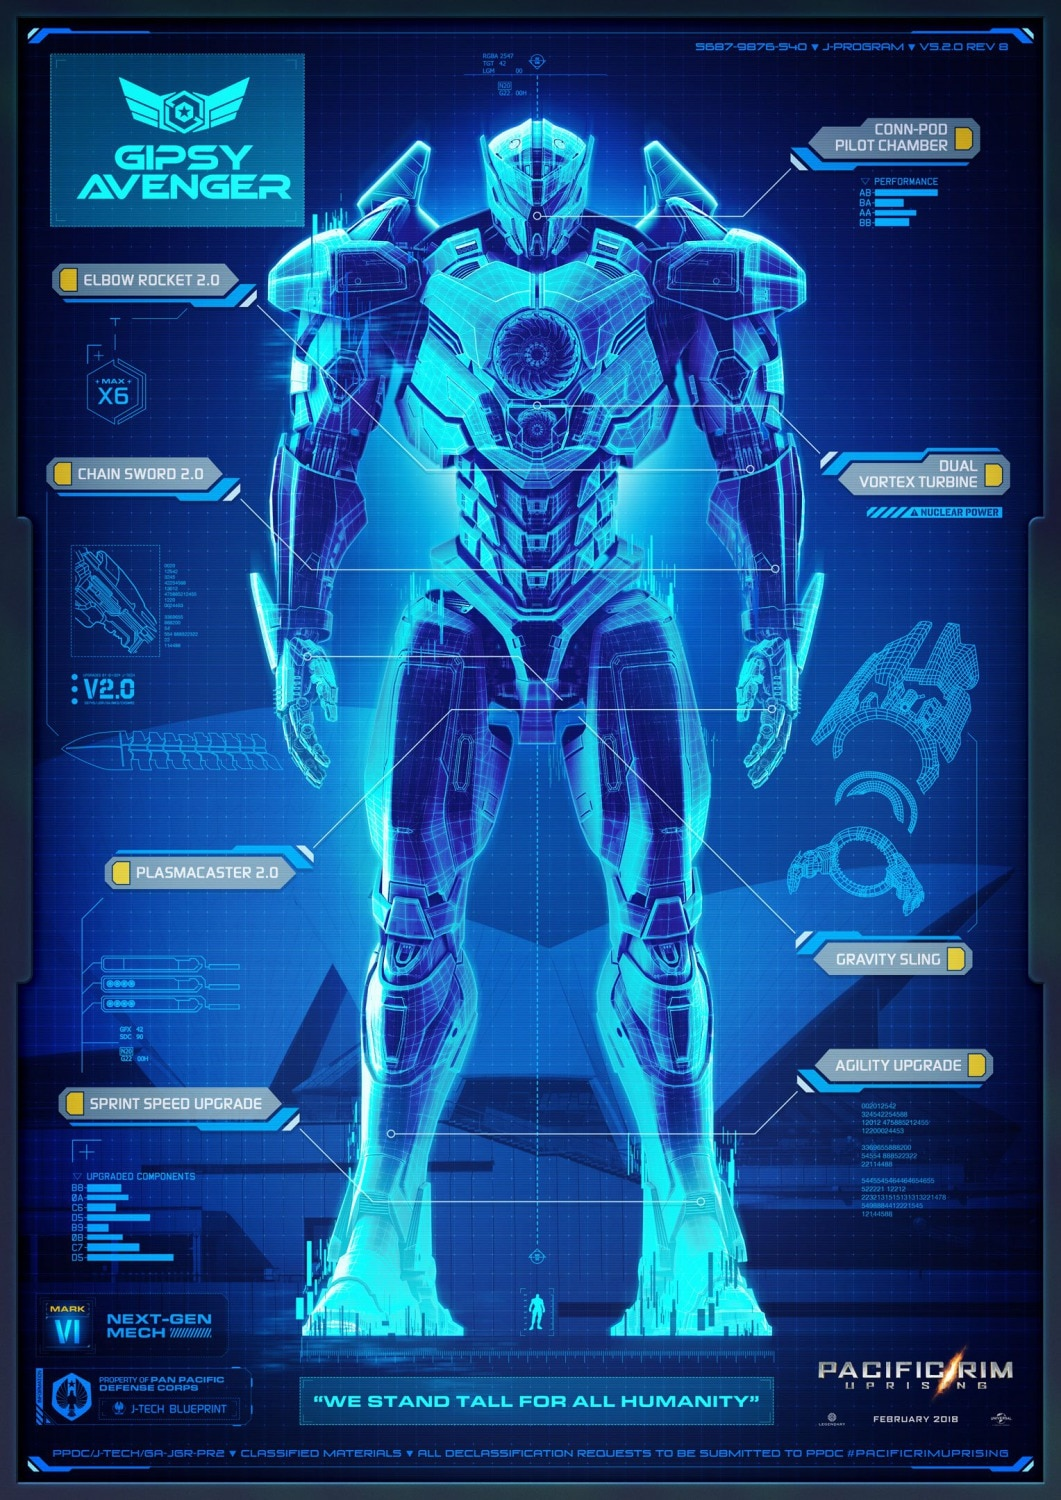 pacific rim uprising 2 - Pacific Rim Uprising Has Been Pushed Back But Not By Too Much